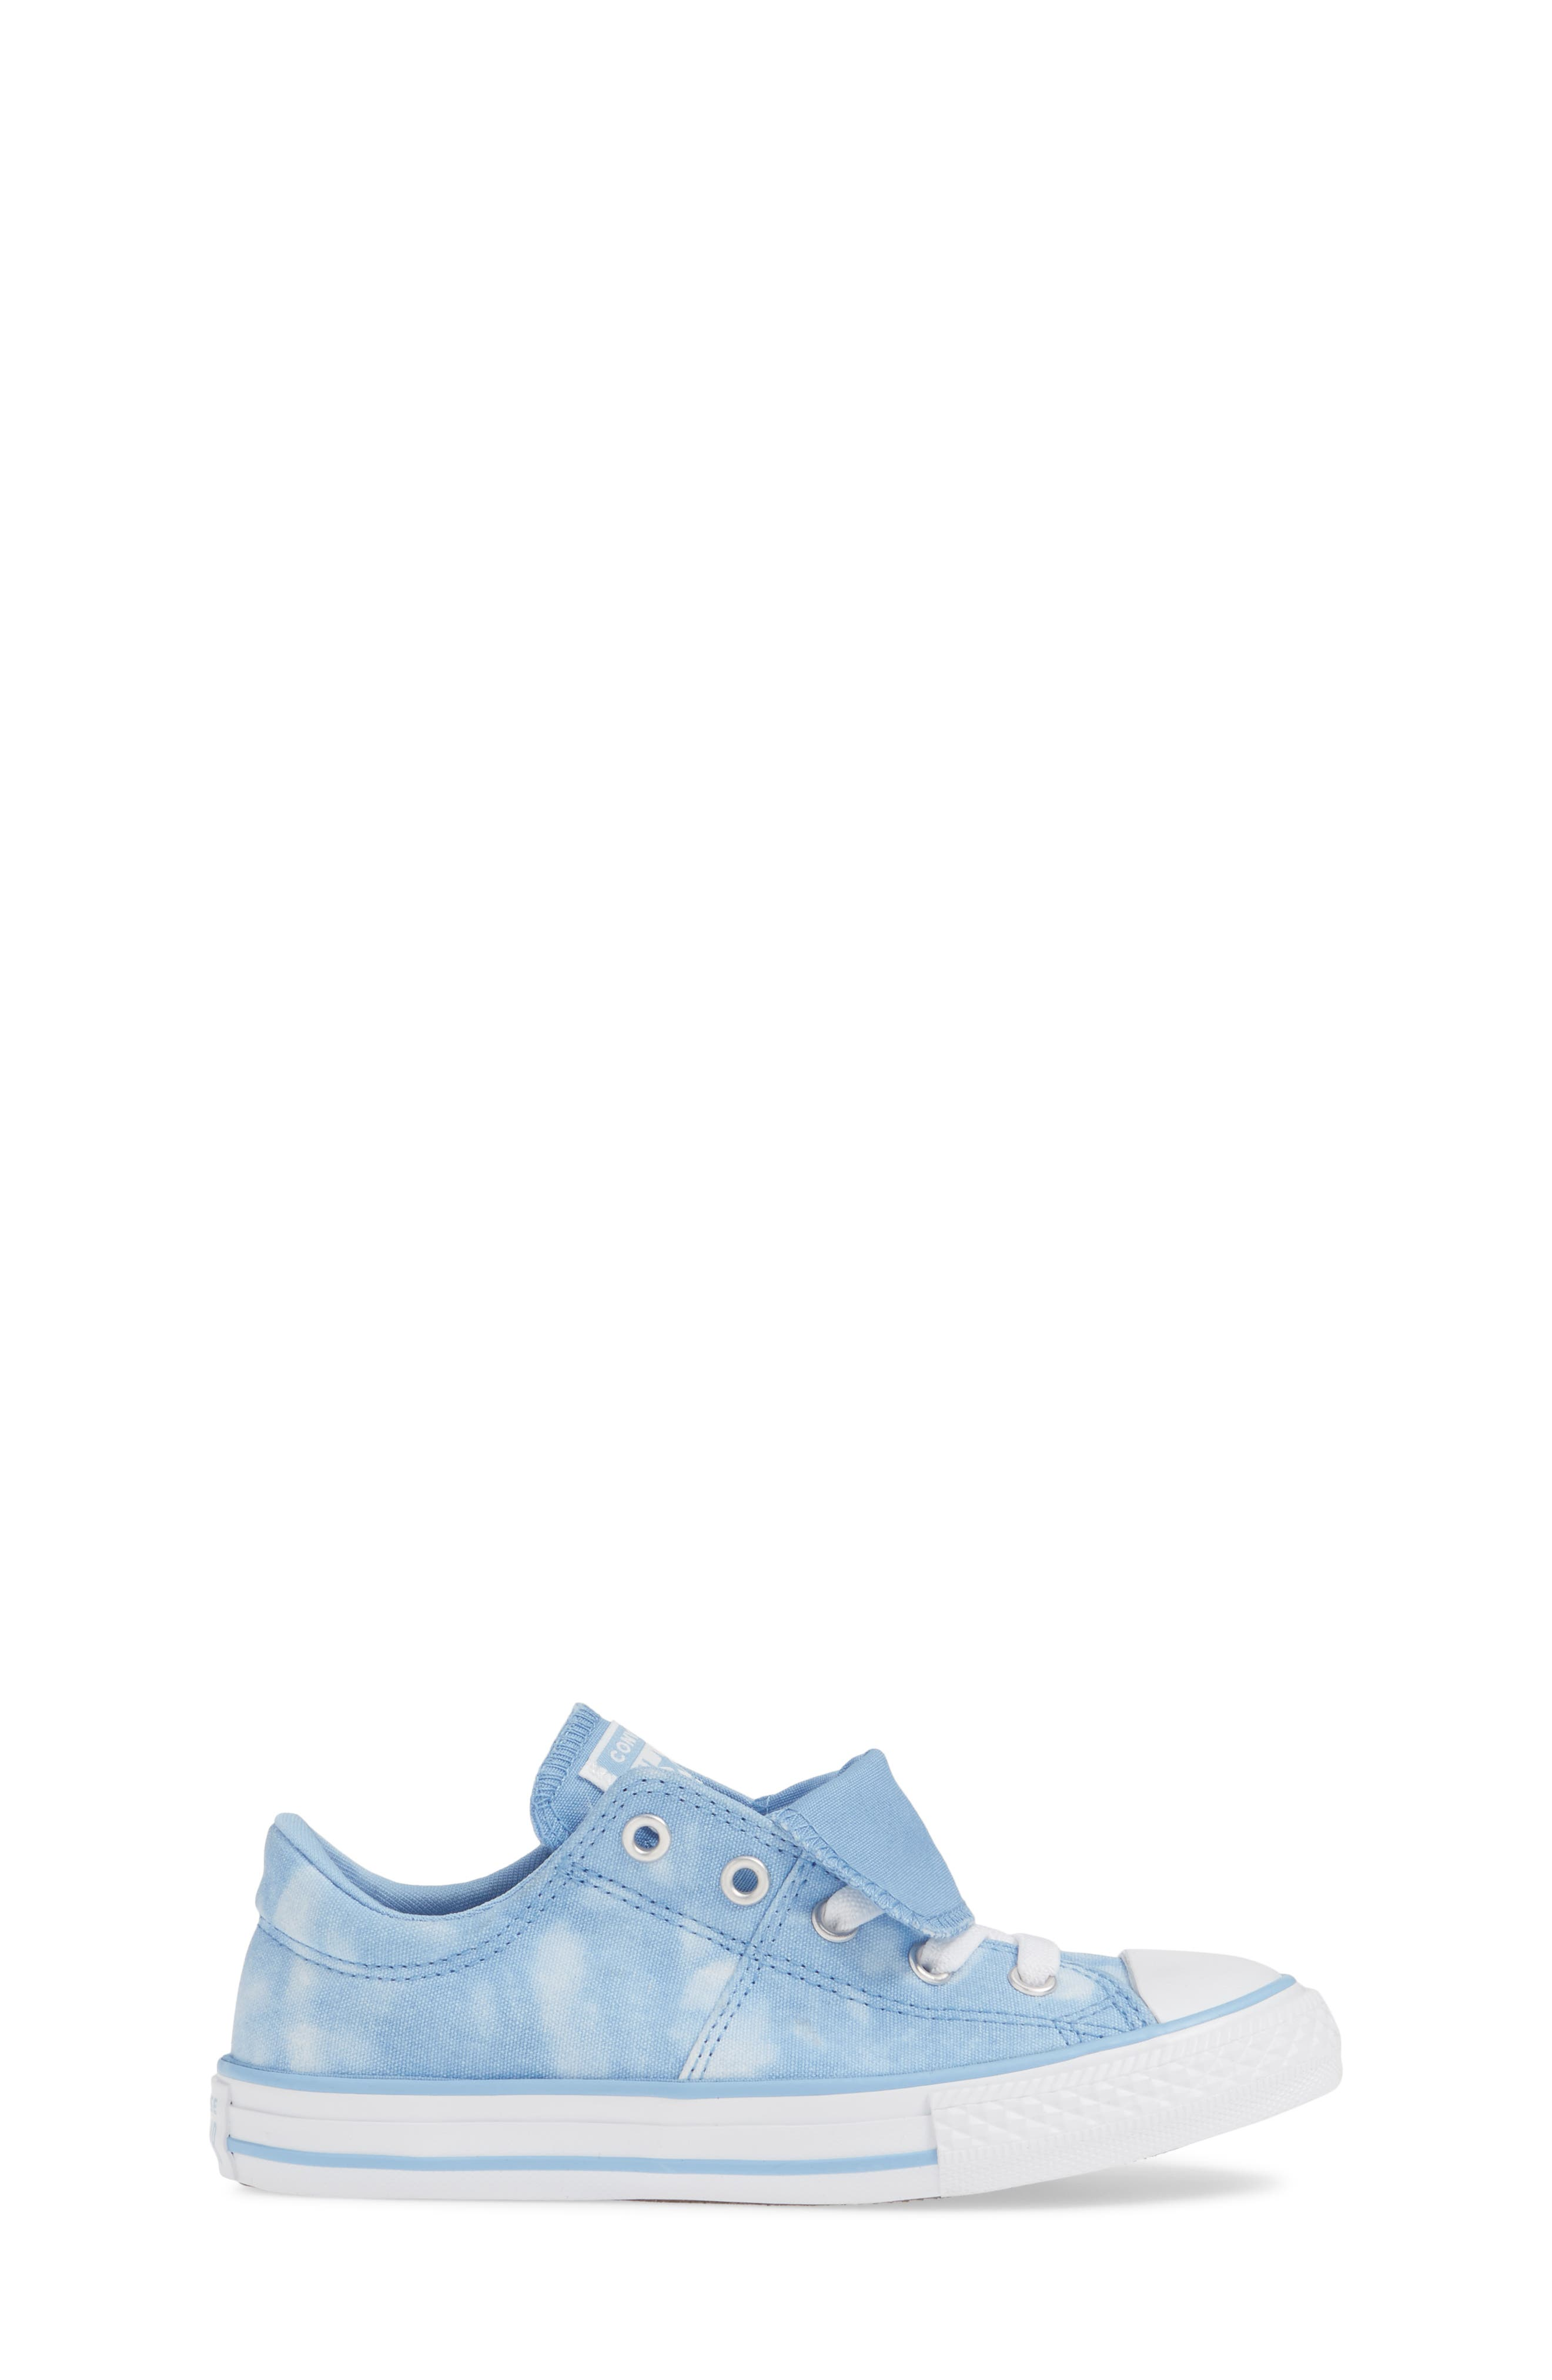 ,                             Chuck Taylor<sup>®</sup> All Star<sup>®</sup> Maddie Double Tongue Sneaker,                             Alternate thumbnail 21, color,                             472